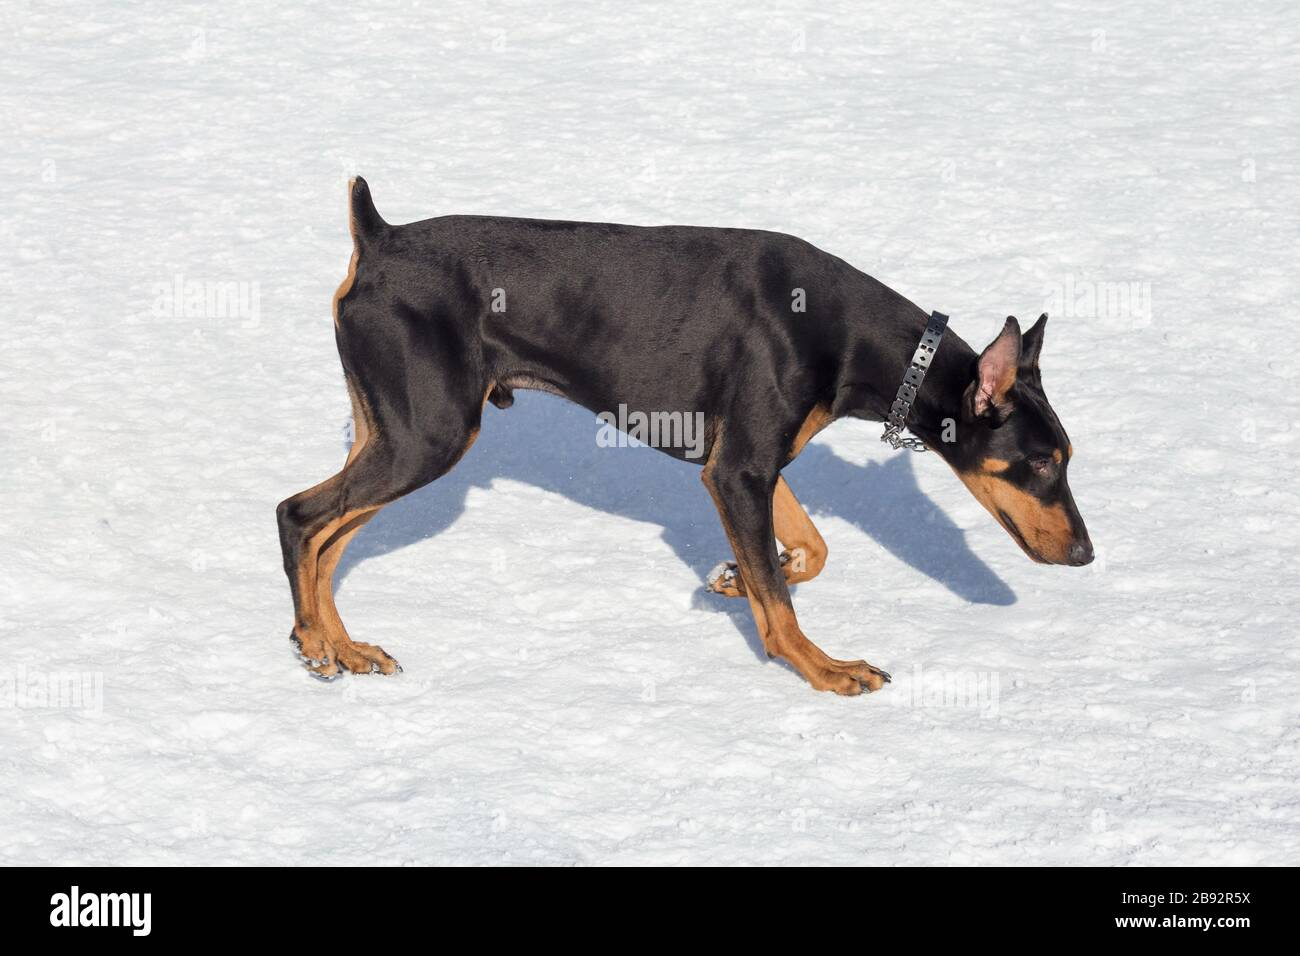 Doberman Pinscher Puppy Is Walking On A White Snow In The Winter Park Pet Animals Purebred Dog Stock Photo Alamy